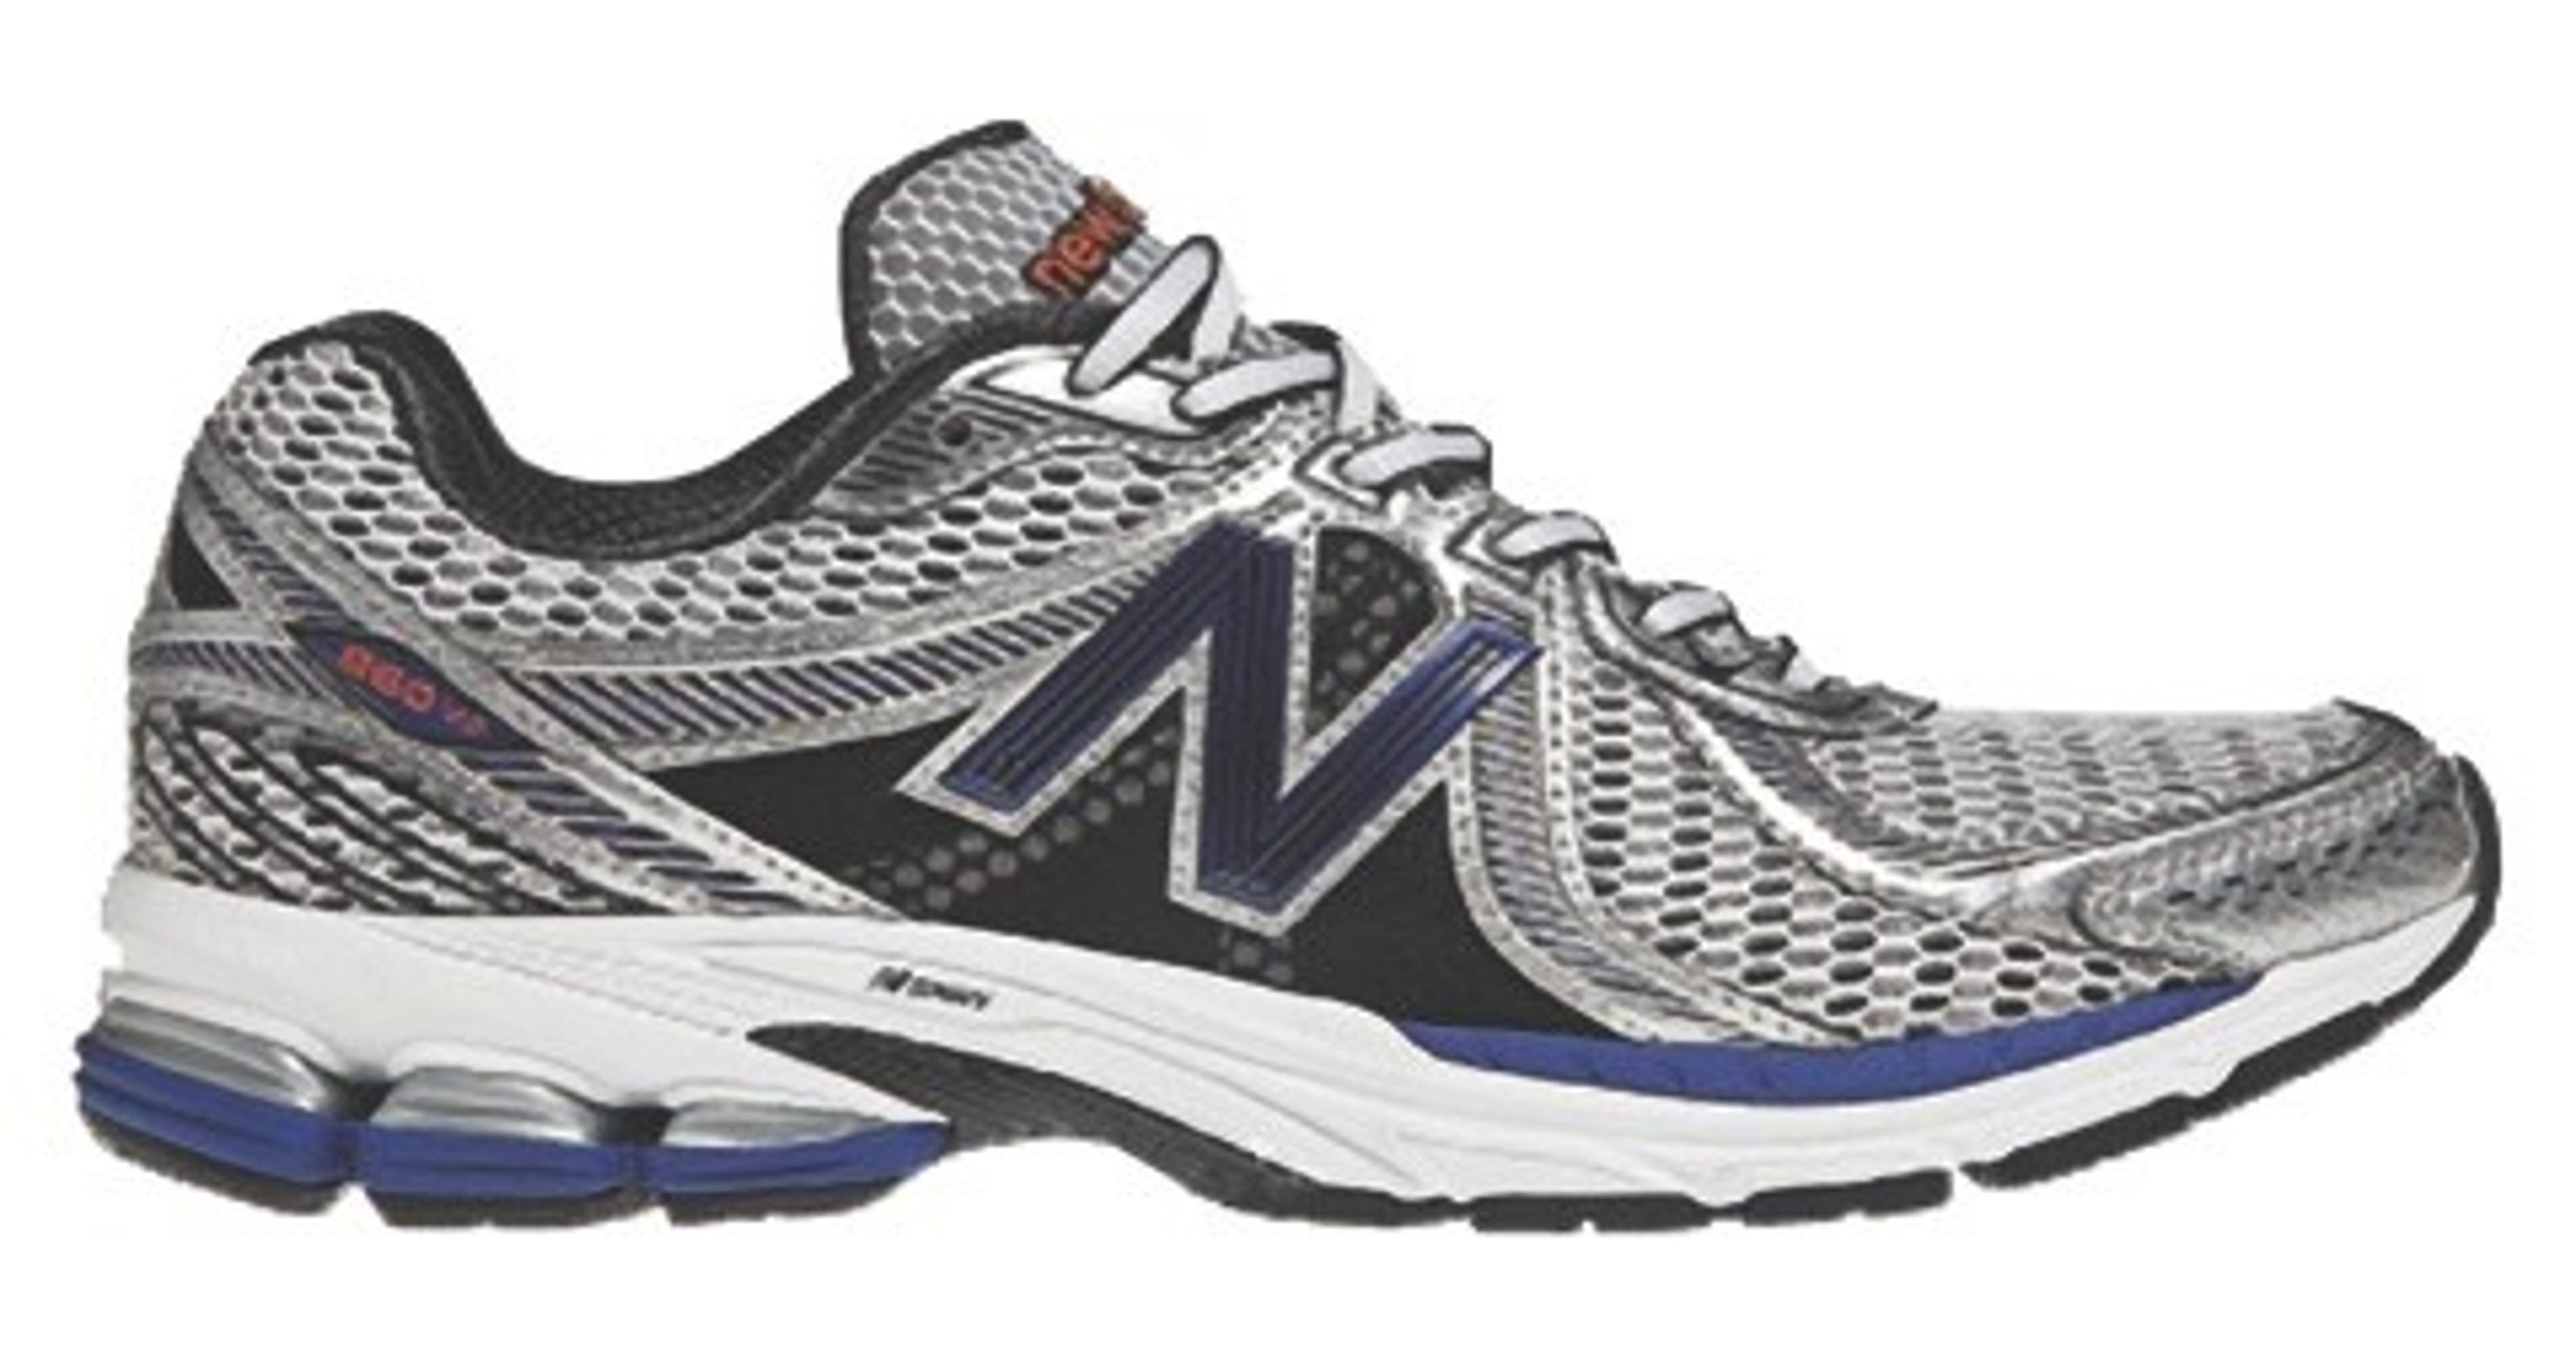 Swags Running Shoes Louisville Ky - Style Guru: Fashion ...